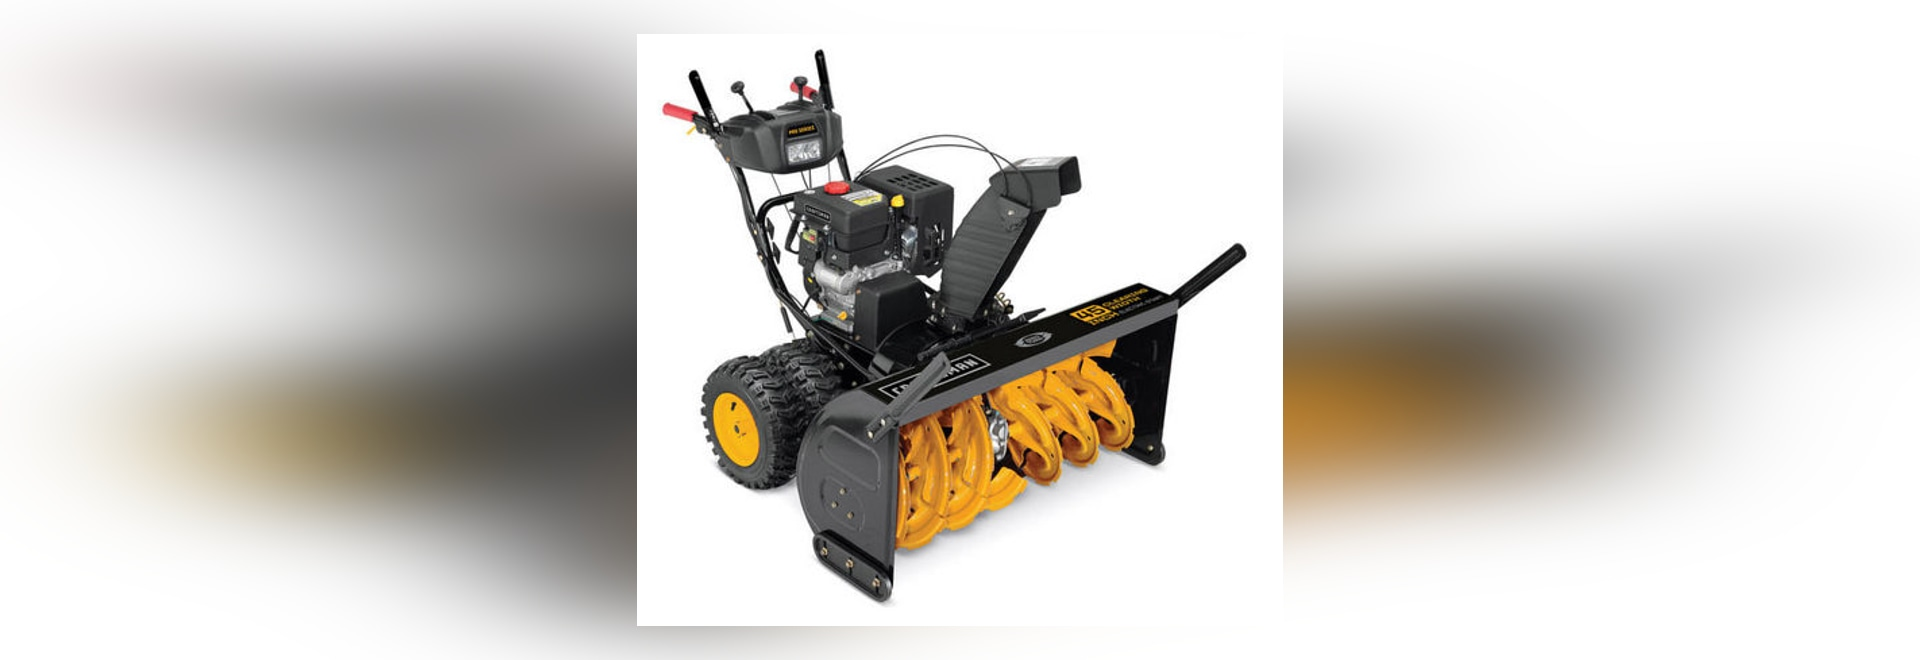 NEW: snow blower by Craftsman.